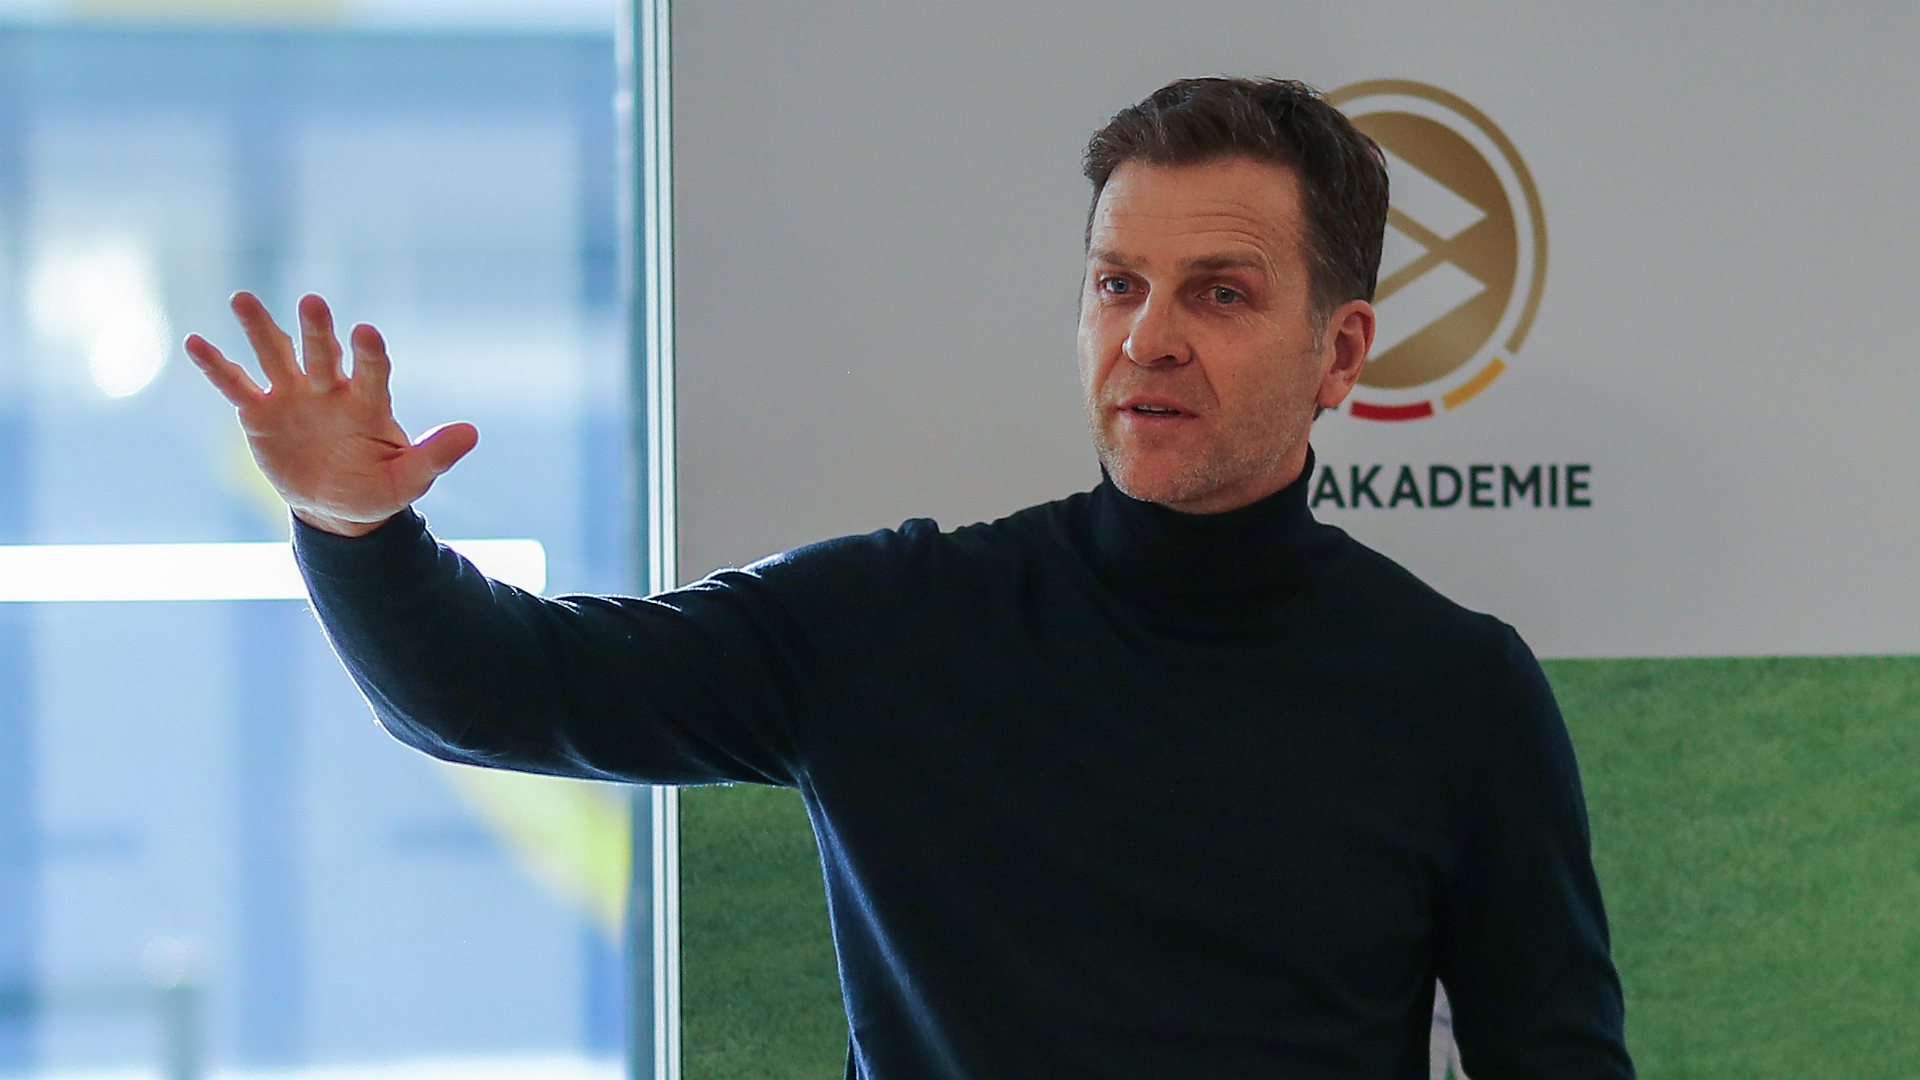 Bierhoff: Germany not in doomsday scenario